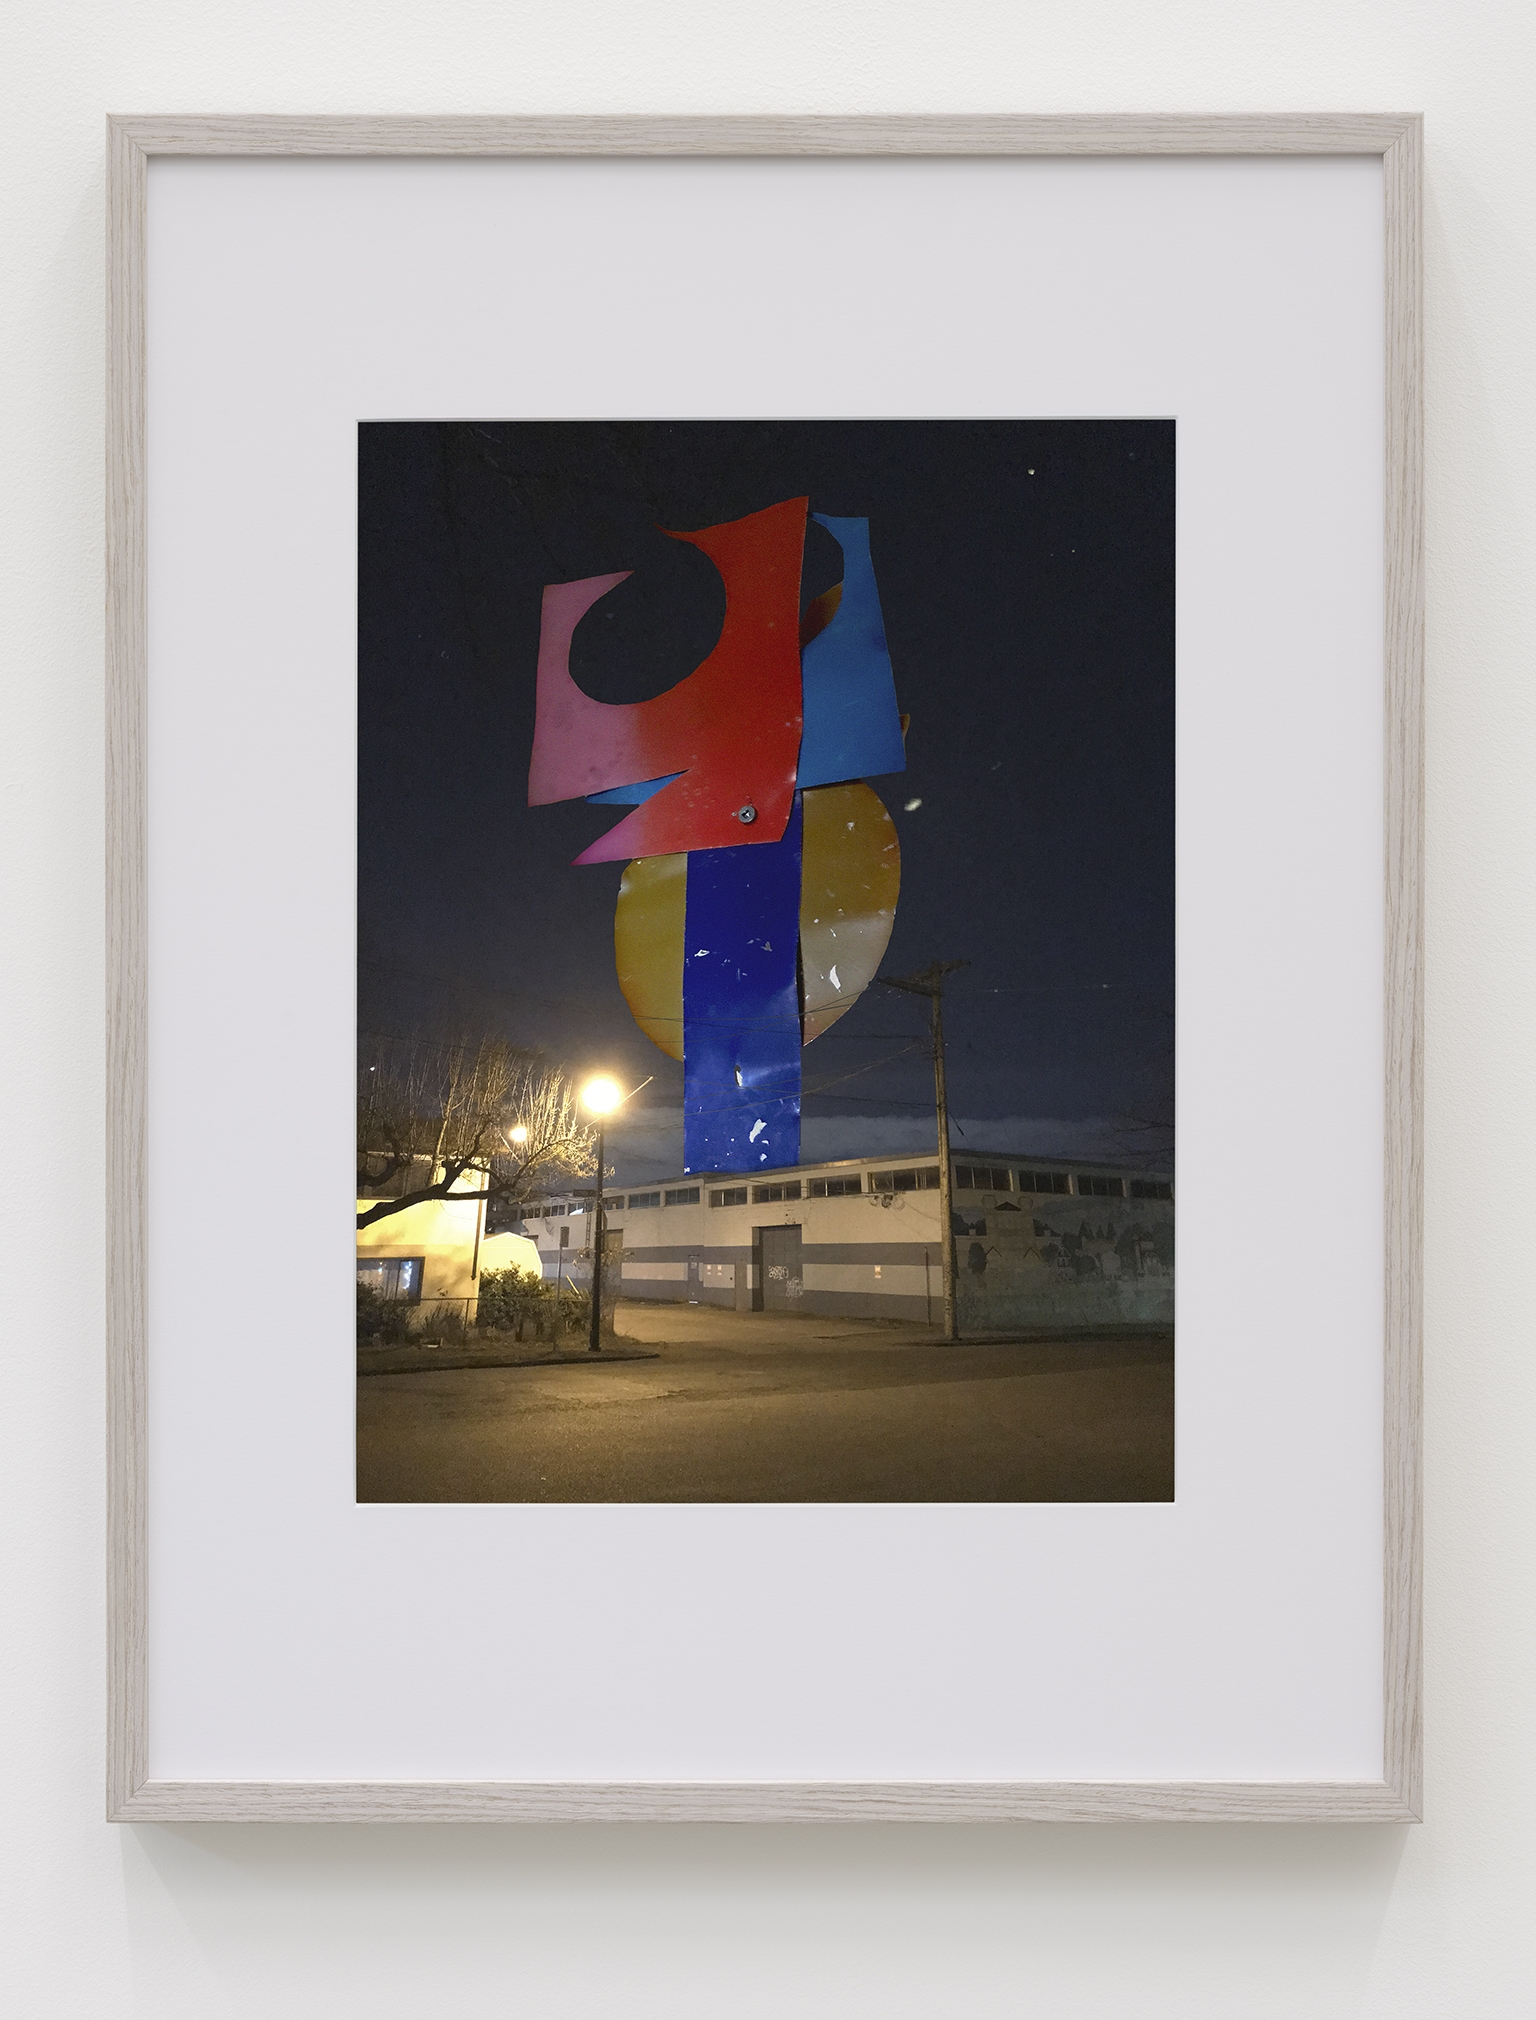 ​Damian Moppett, Night Monument A, 2019, inkjet print, 41 x 33 in. (104 x 84 cm) by